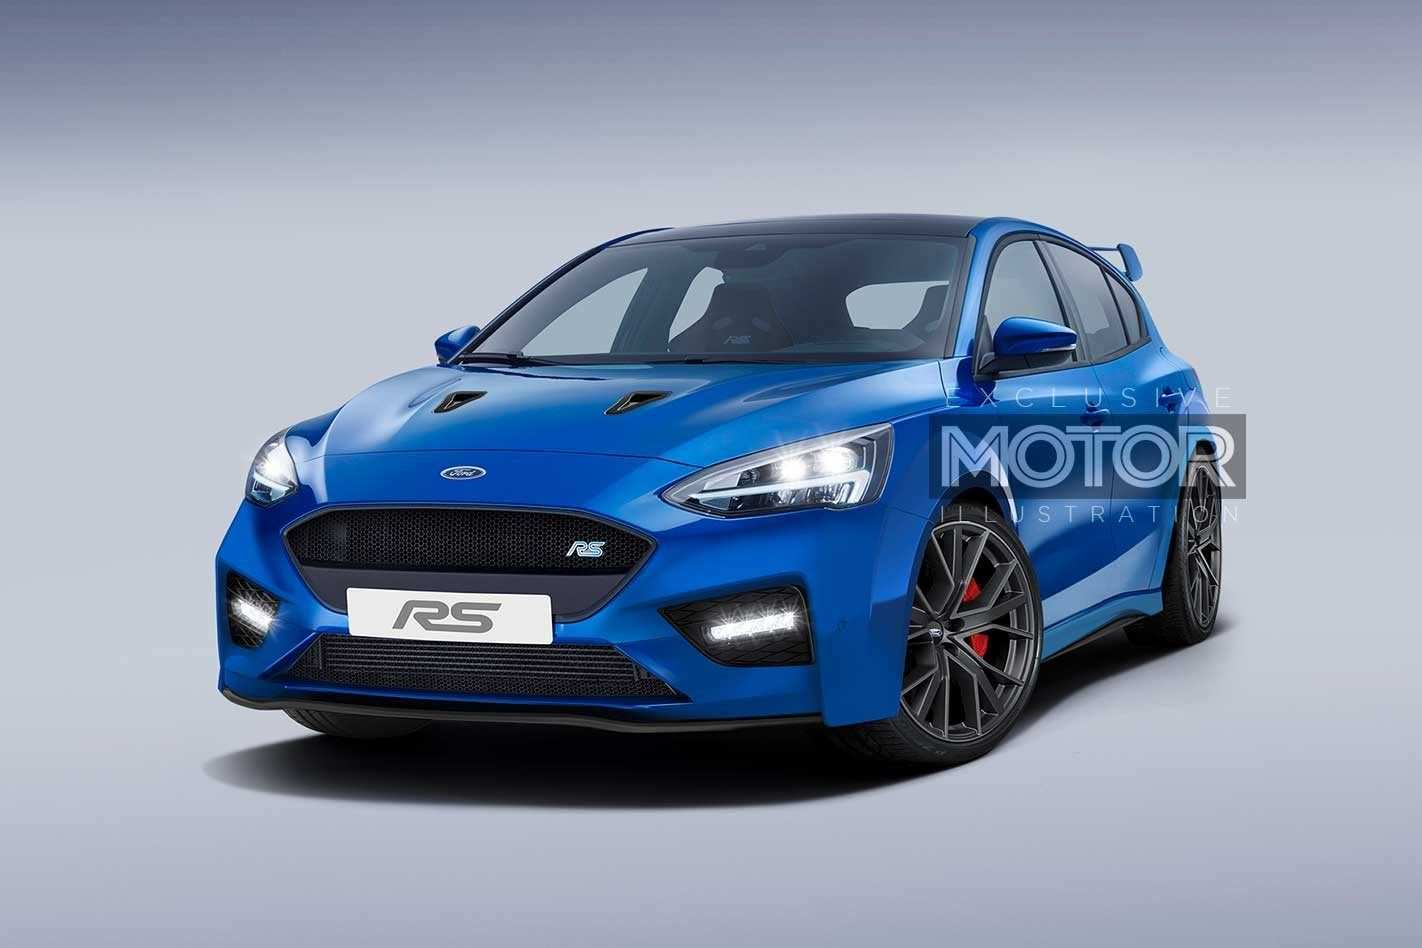 61 Gallery of 2020 Ford Escort 2018 Research New by 2020 Ford Escort 2018